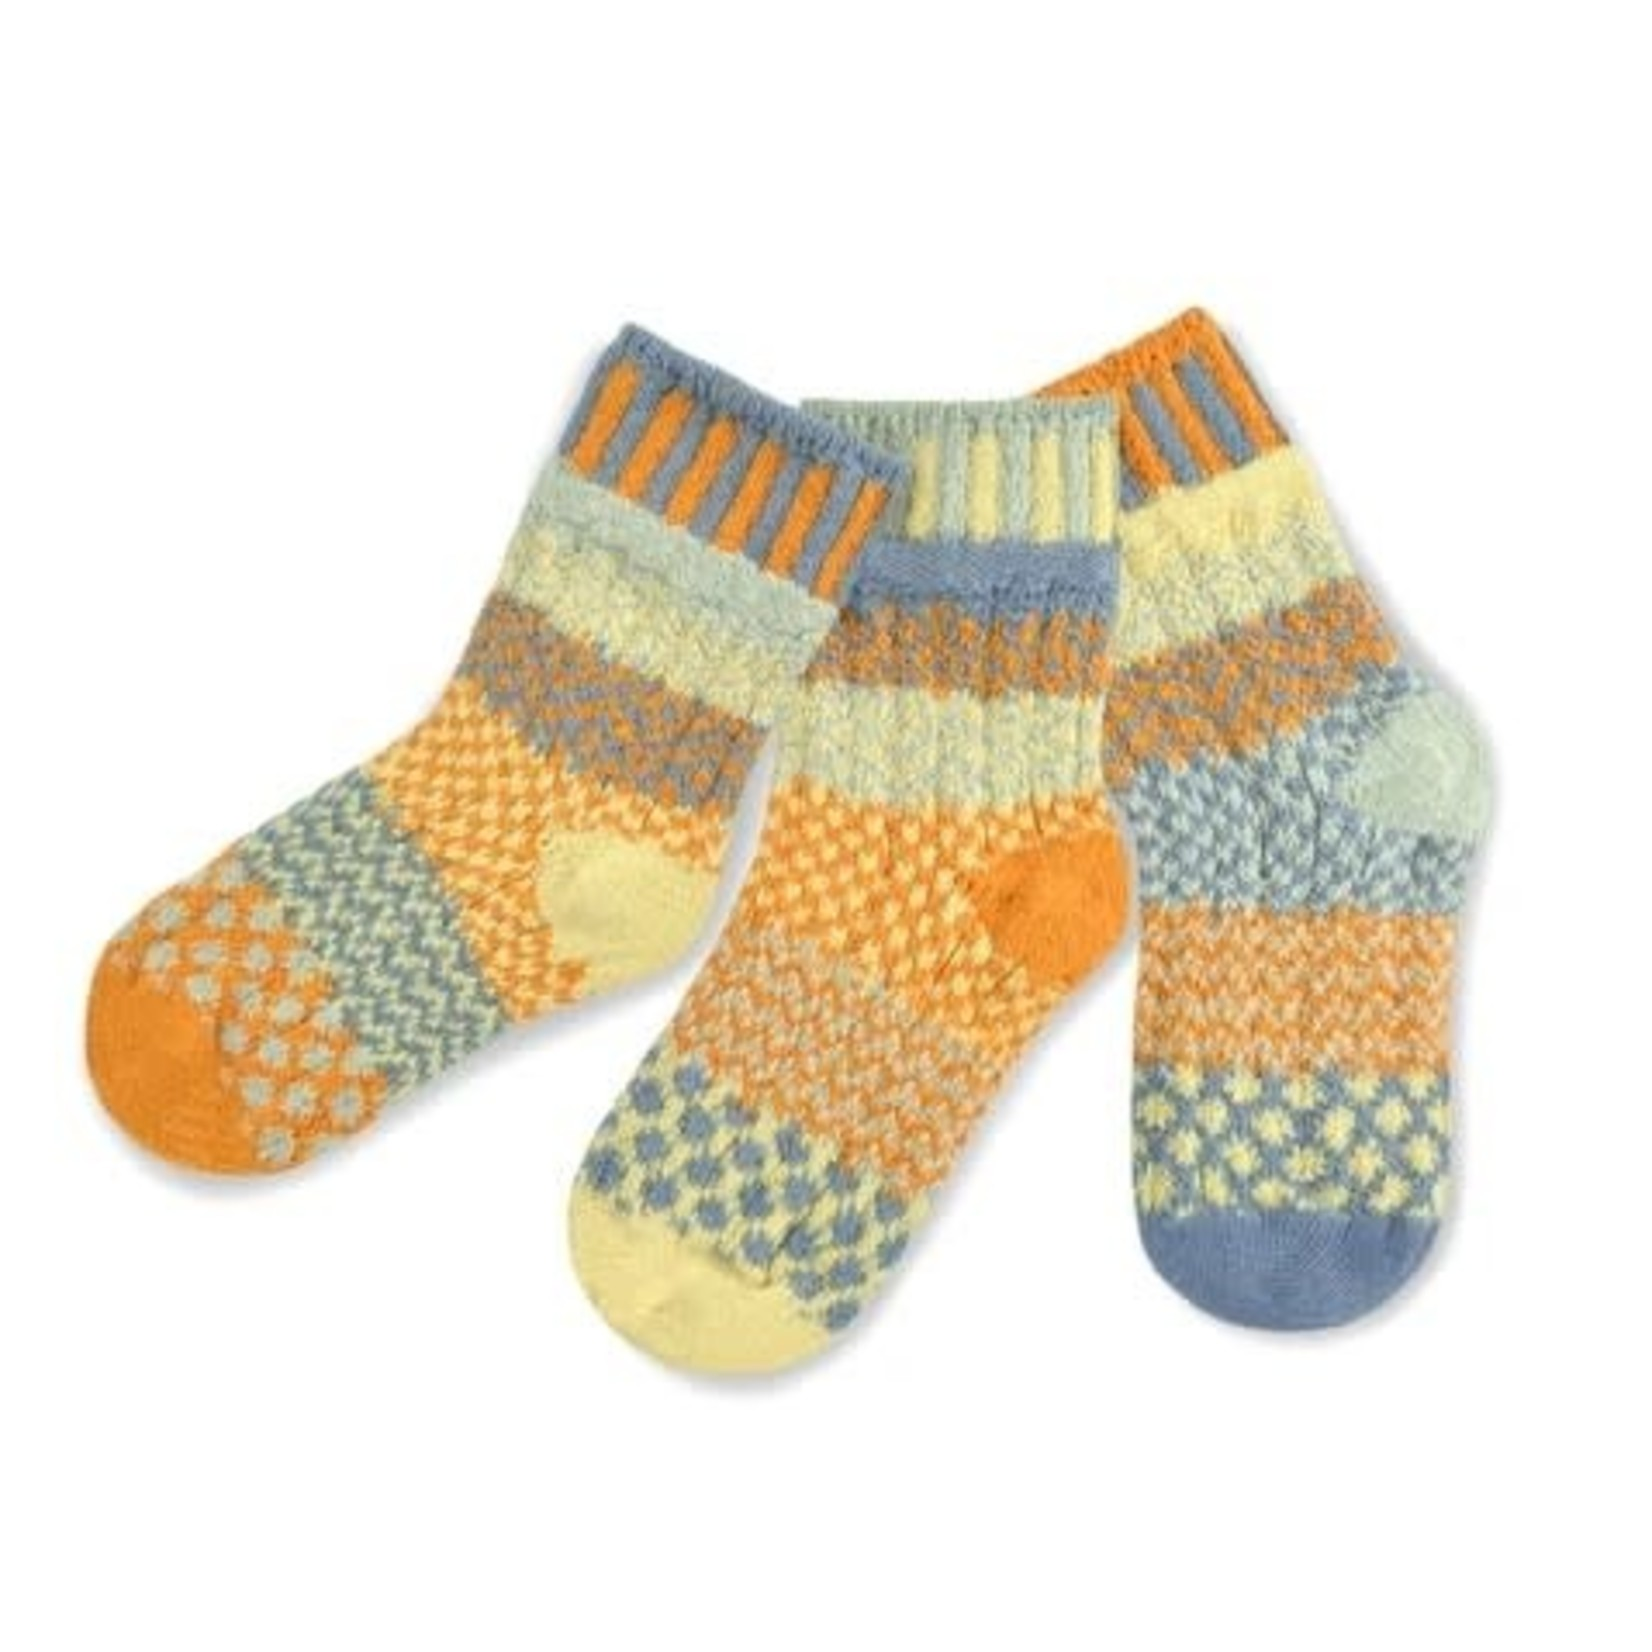 Solmates Solmate Socks Youth